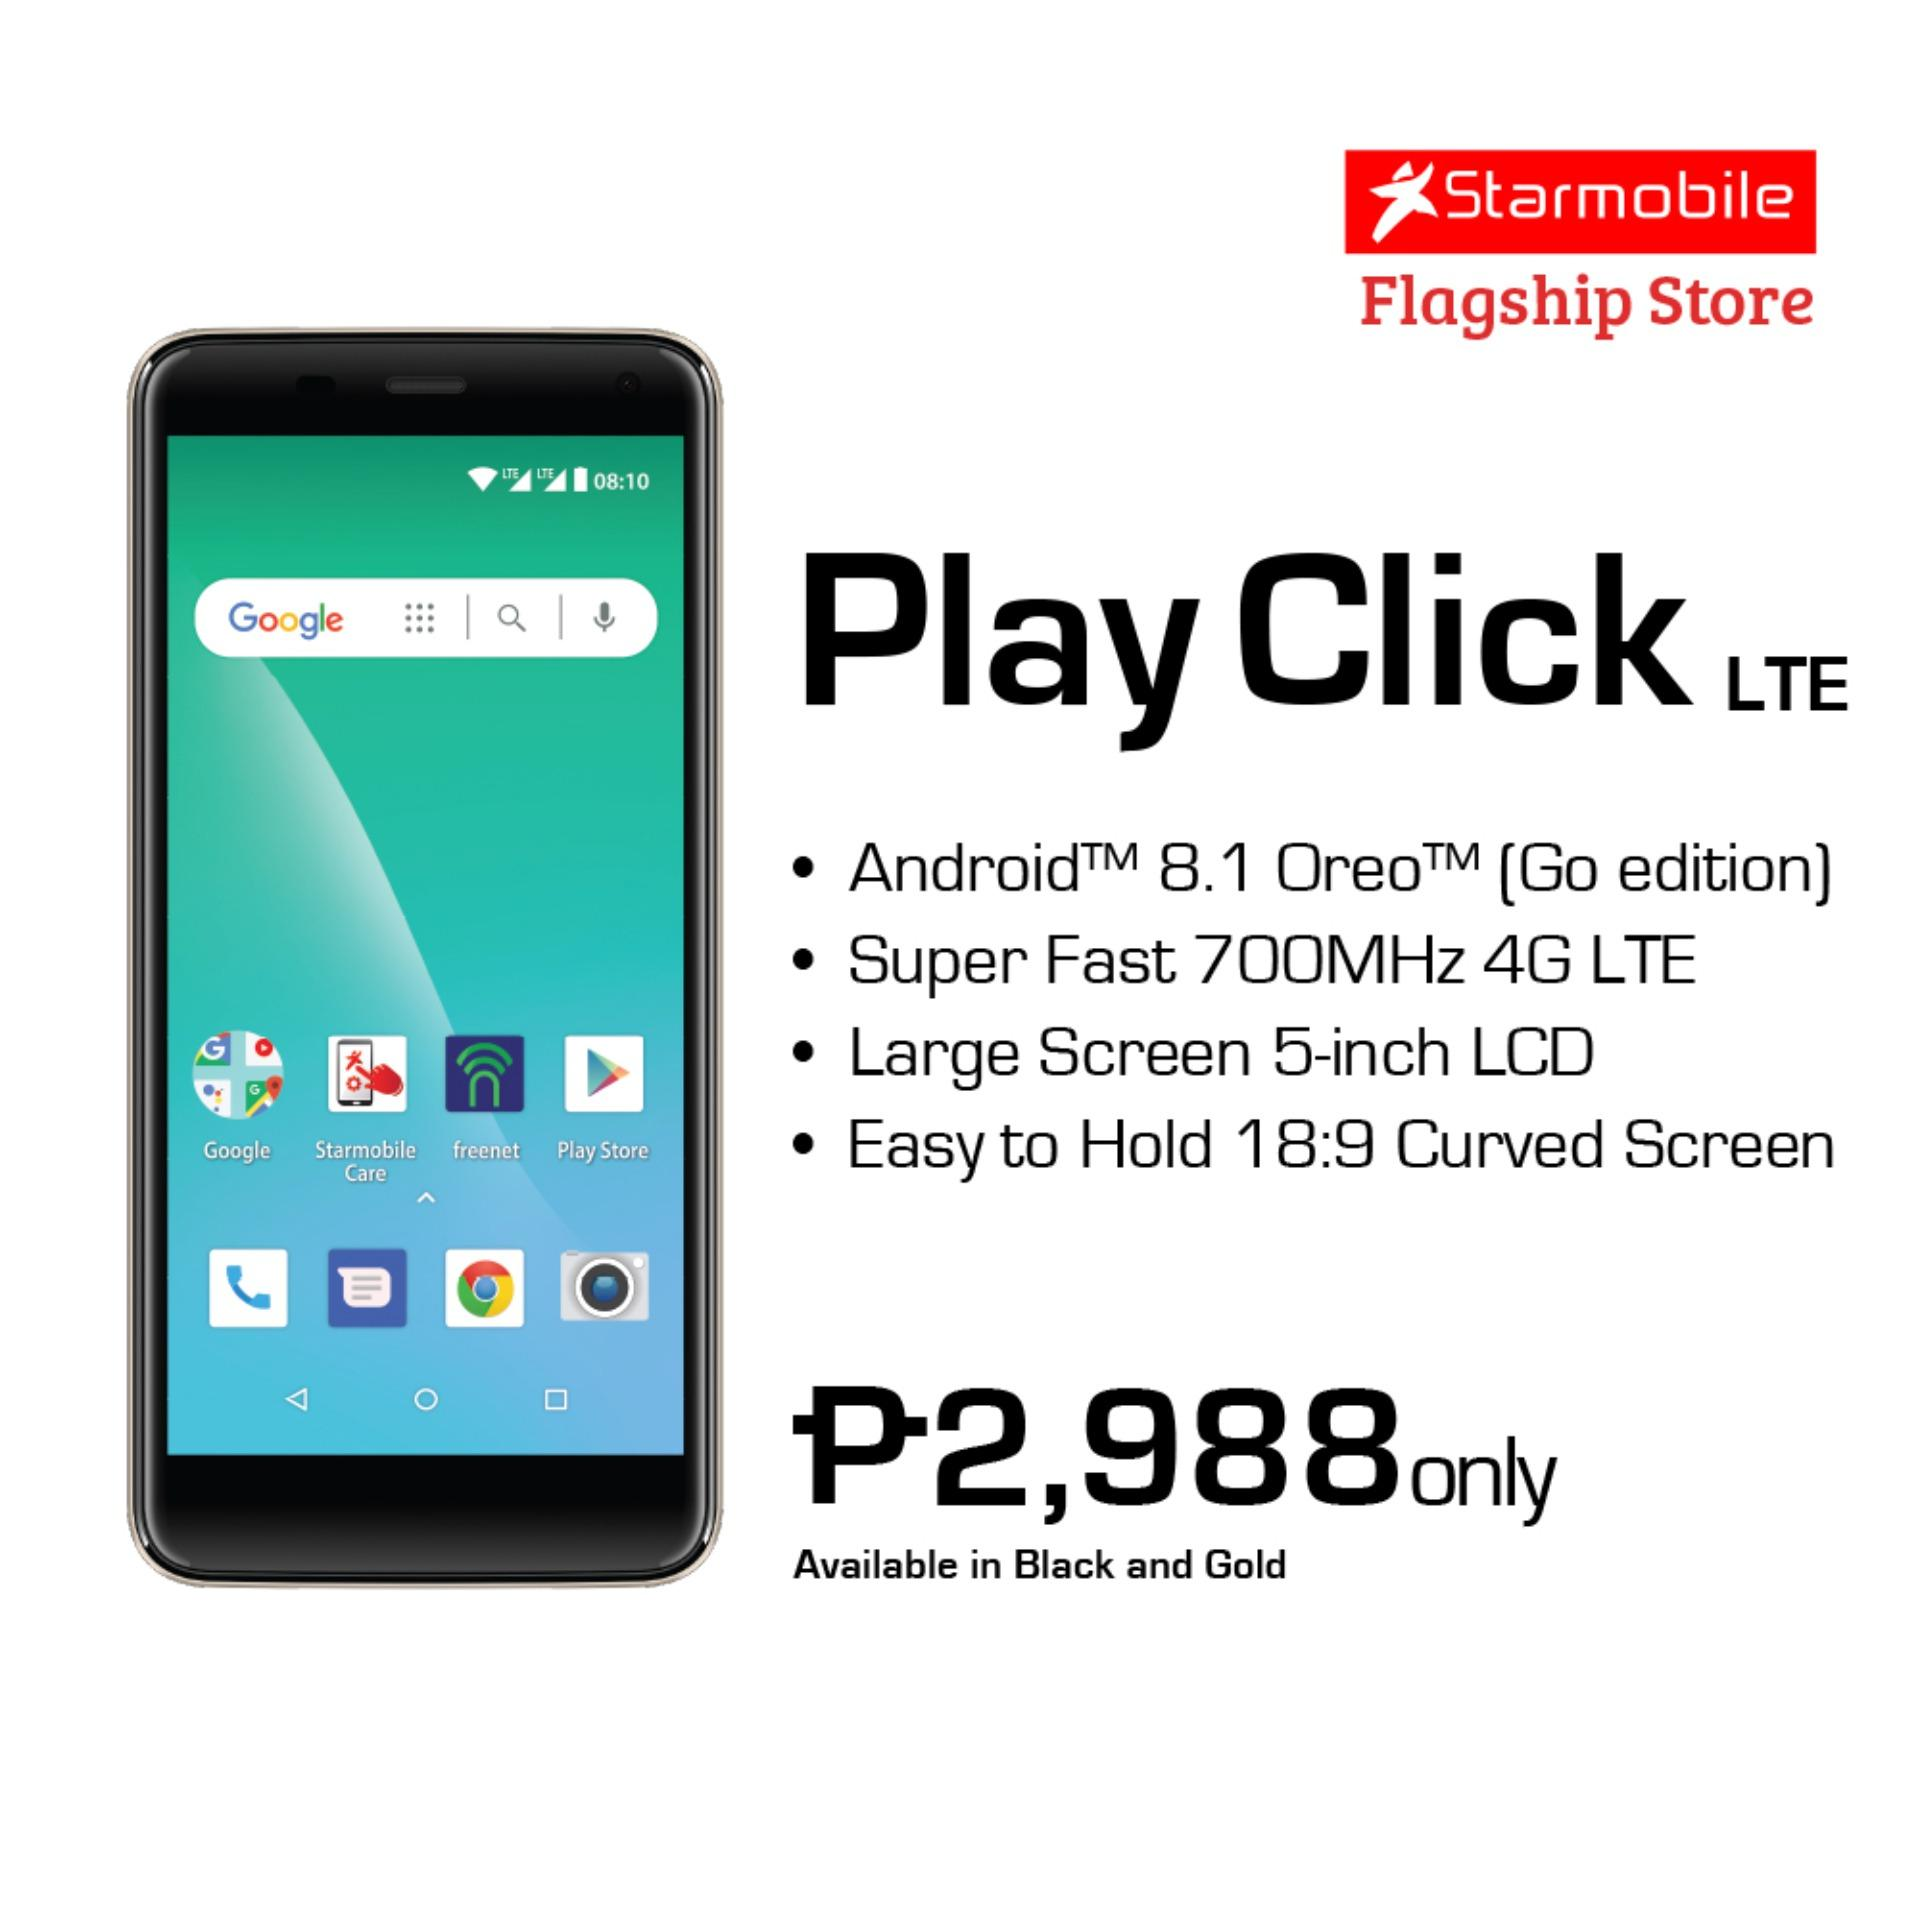 Starmobile Play Click LTE 8GB